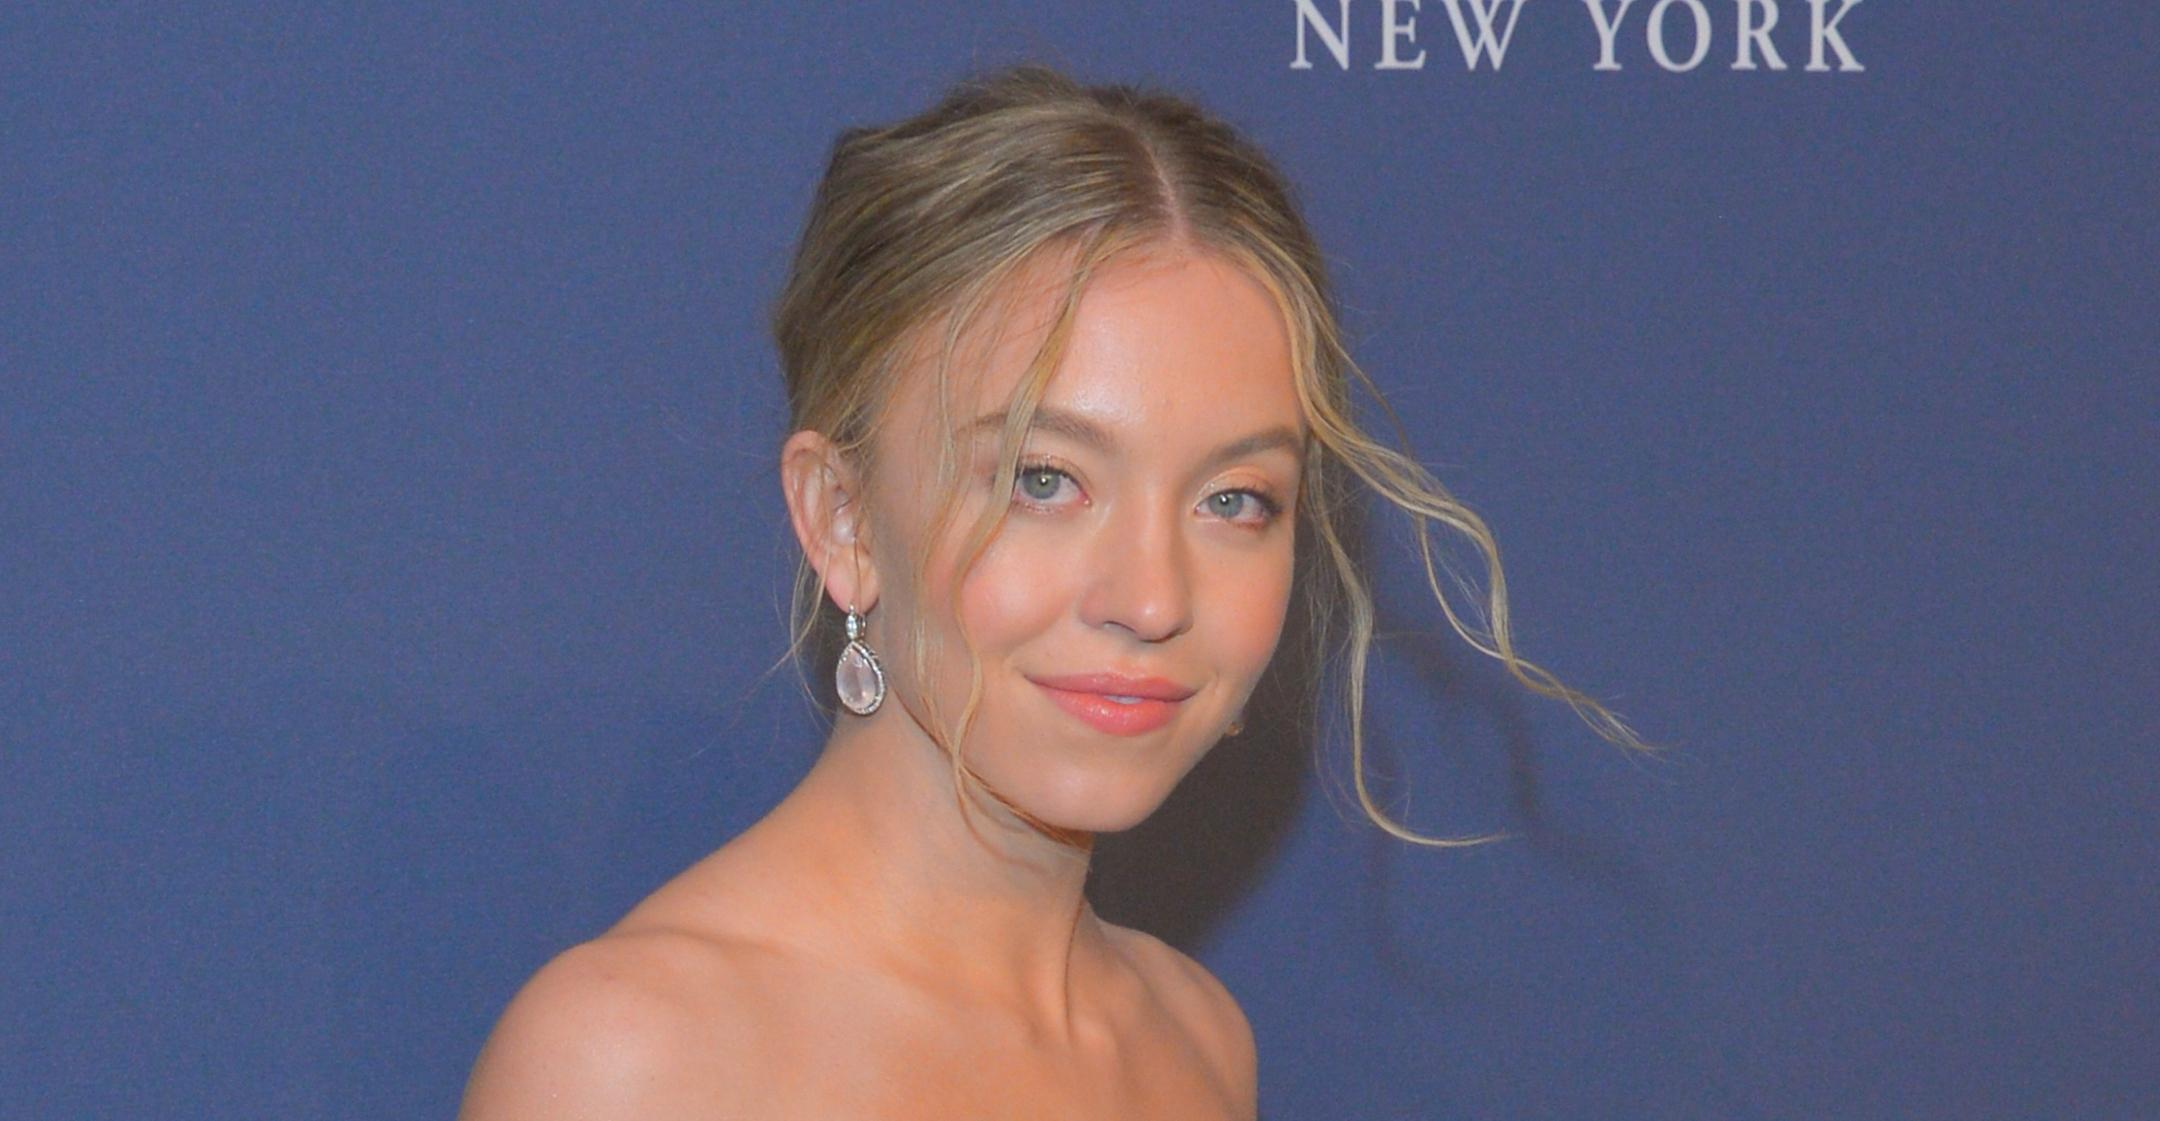 euphoria fan fave sydney sweeney relies on exfoliation personalized skincare blemish free